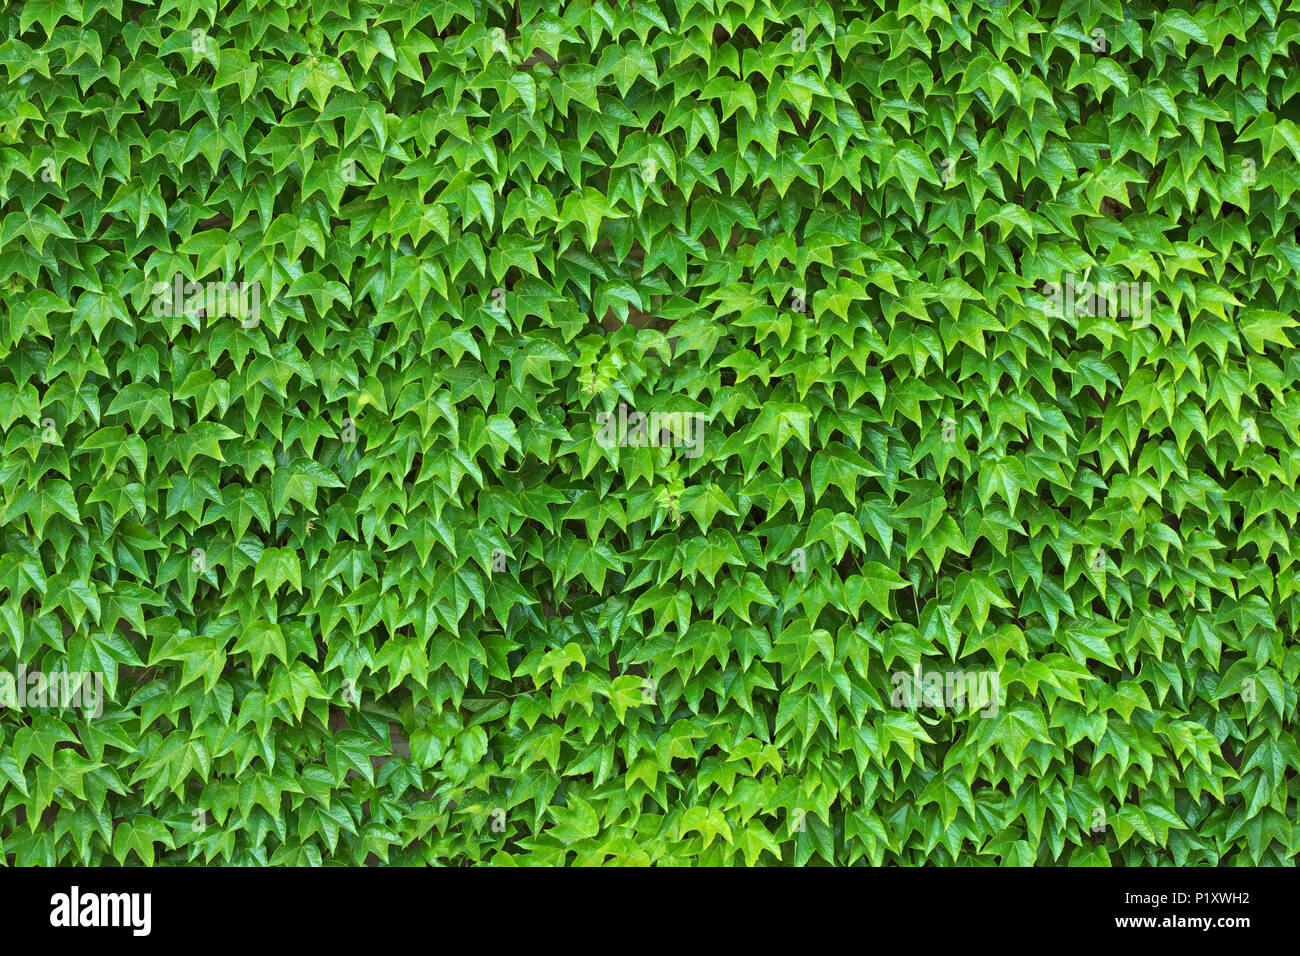 Dense ivy on wall fresh green leaves texture background Stock Photo